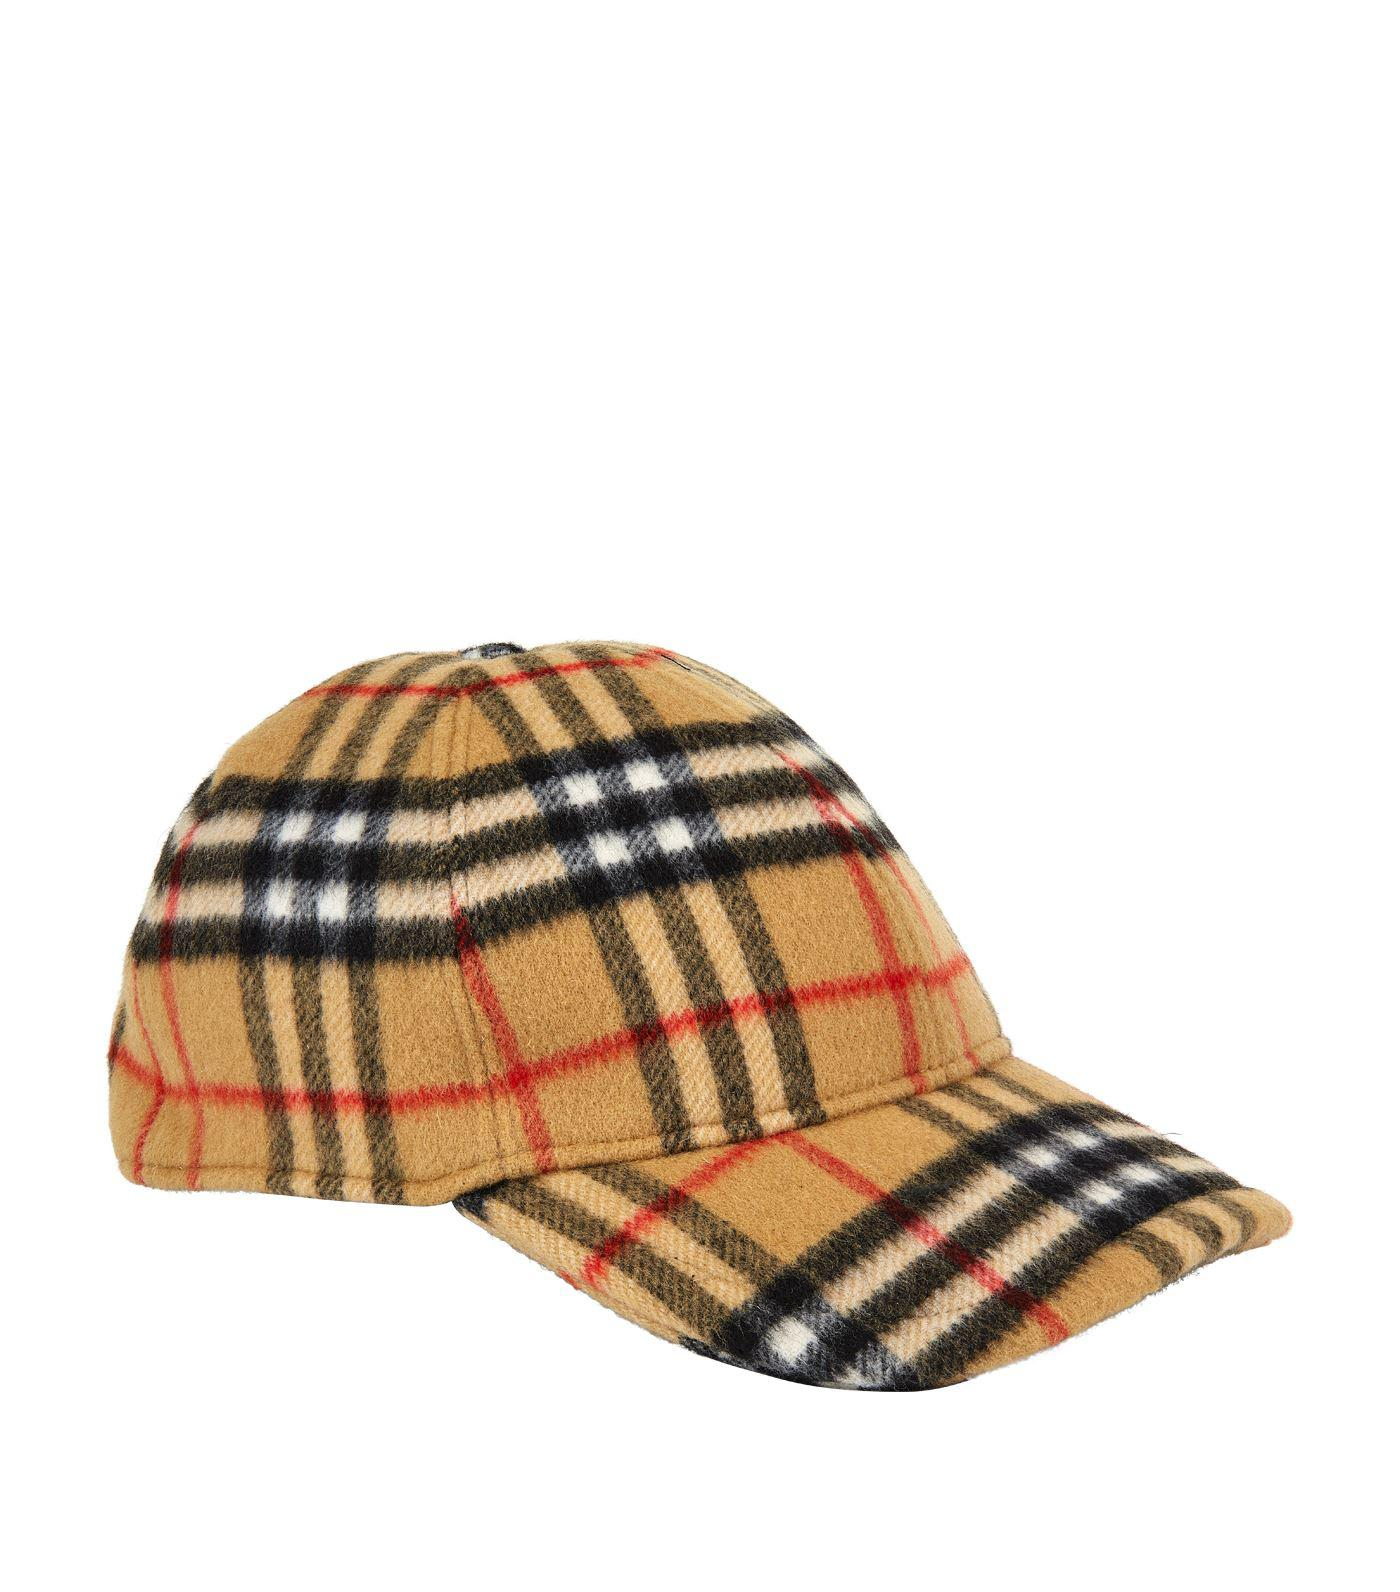 9c2f50a833f Burberry Vintage Check Wool Baseball Cap in Yellow for Men - Lyst